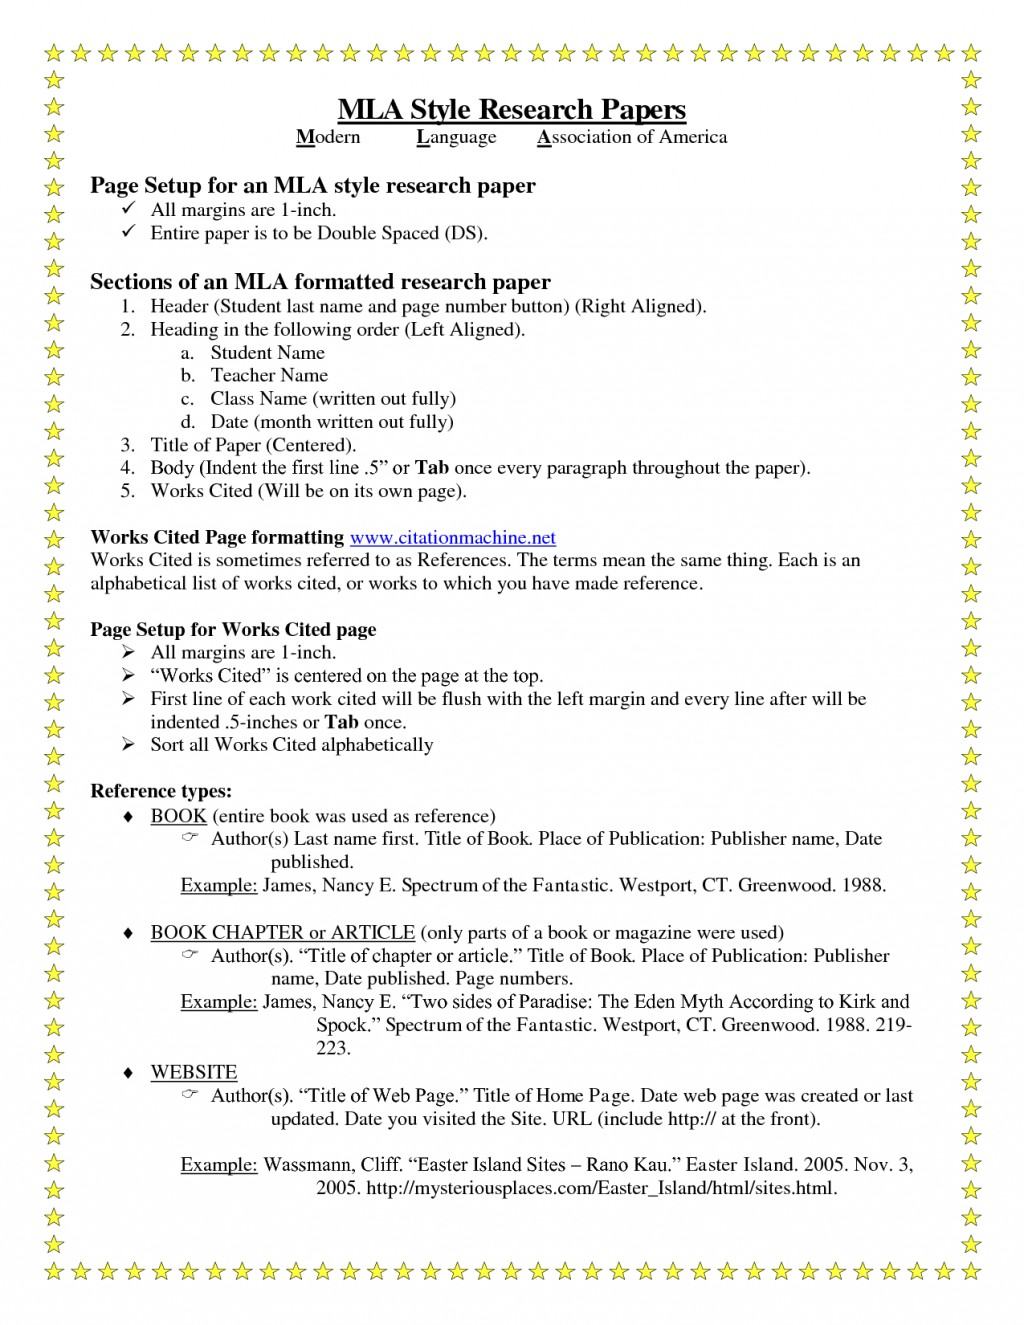 008 Research Paper Proper Order Of Sections In Apa Format Marvelous A Large